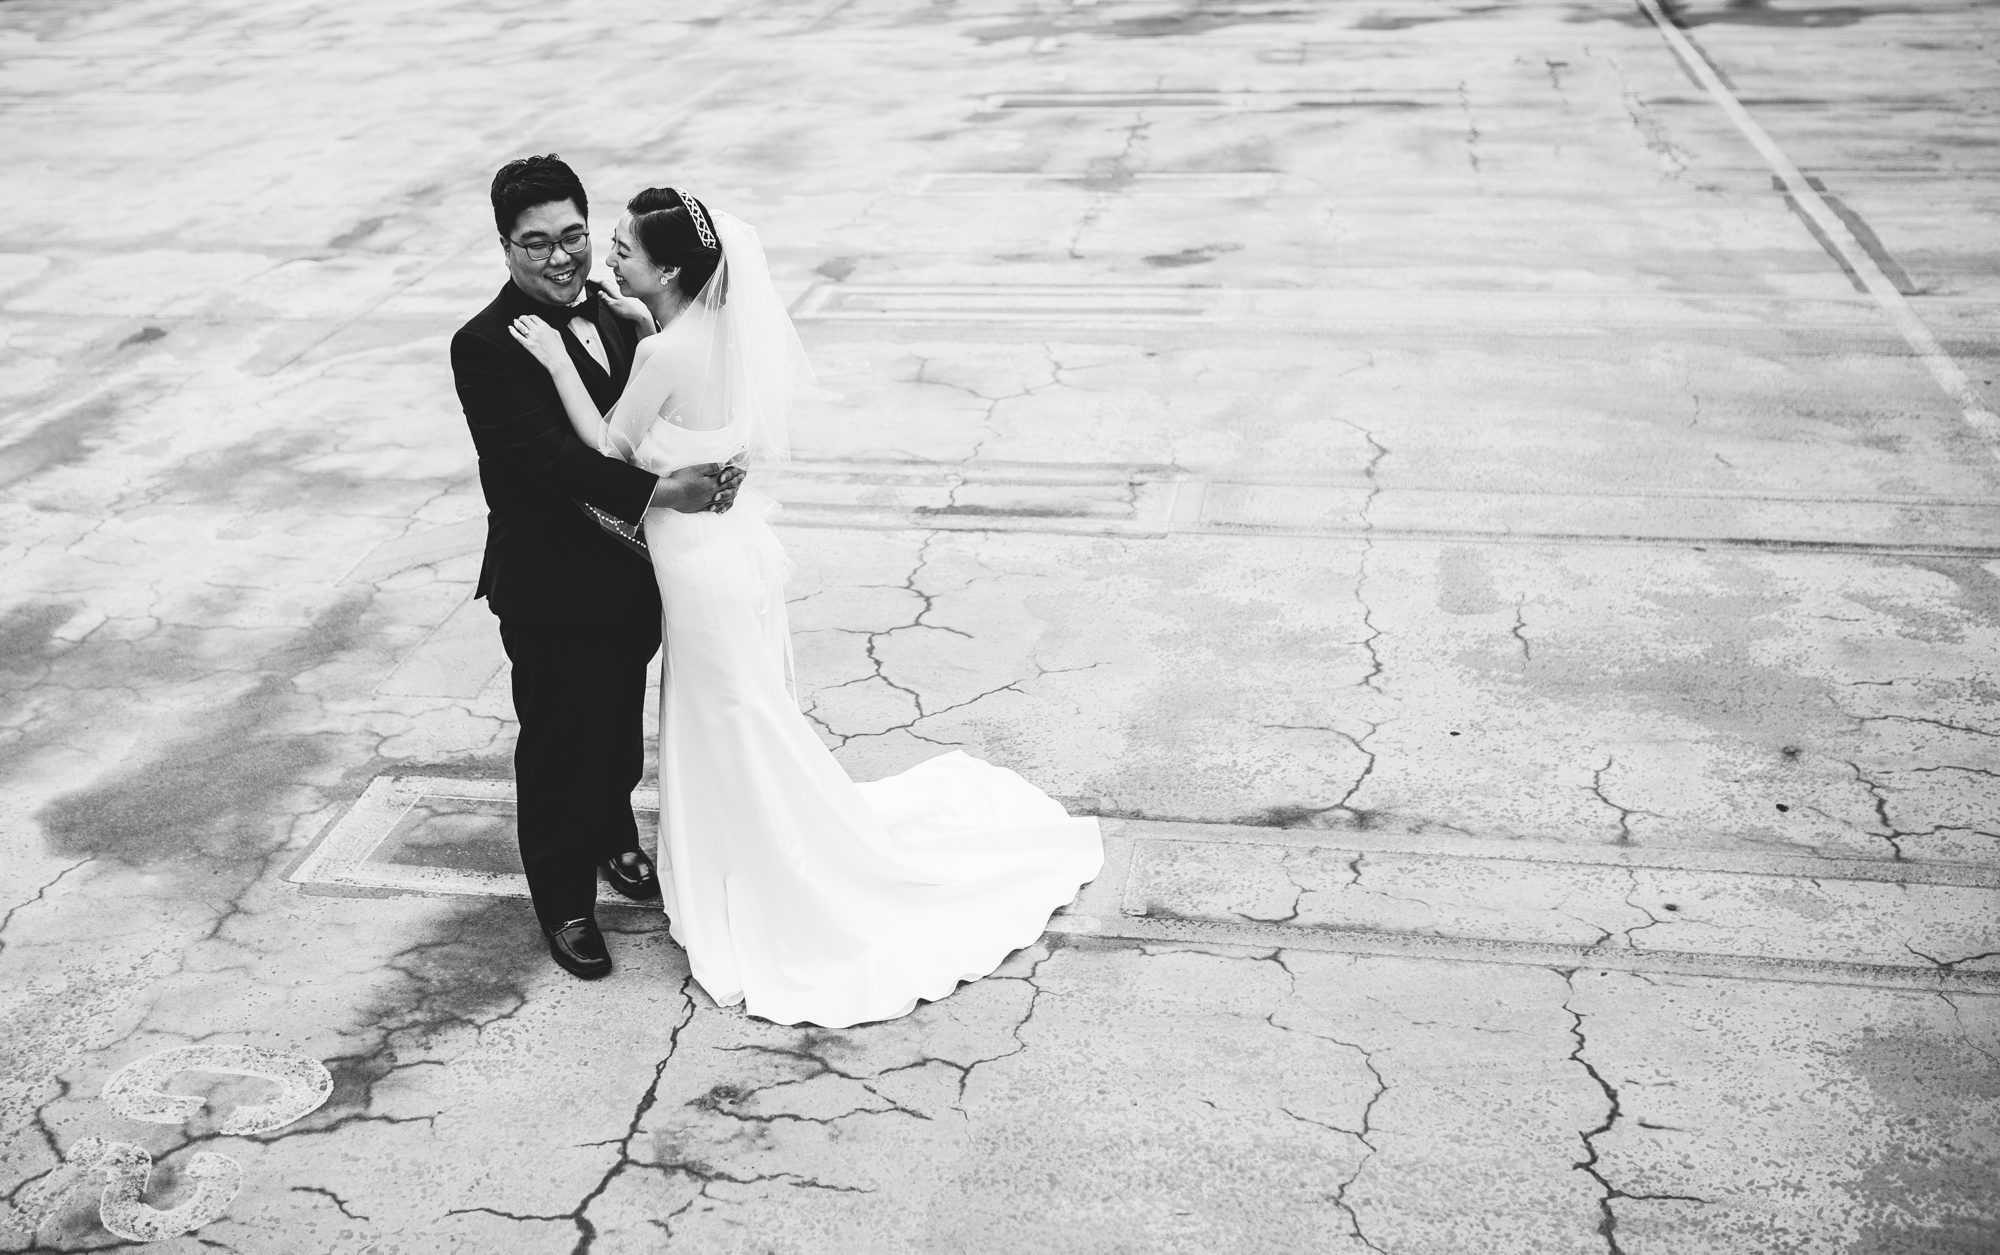 ©Isaiah & Taylor Photography - Destination Wedding Photographers - Downtown Los Angeles Parking Lot Rooftop Wedding-012.jpg